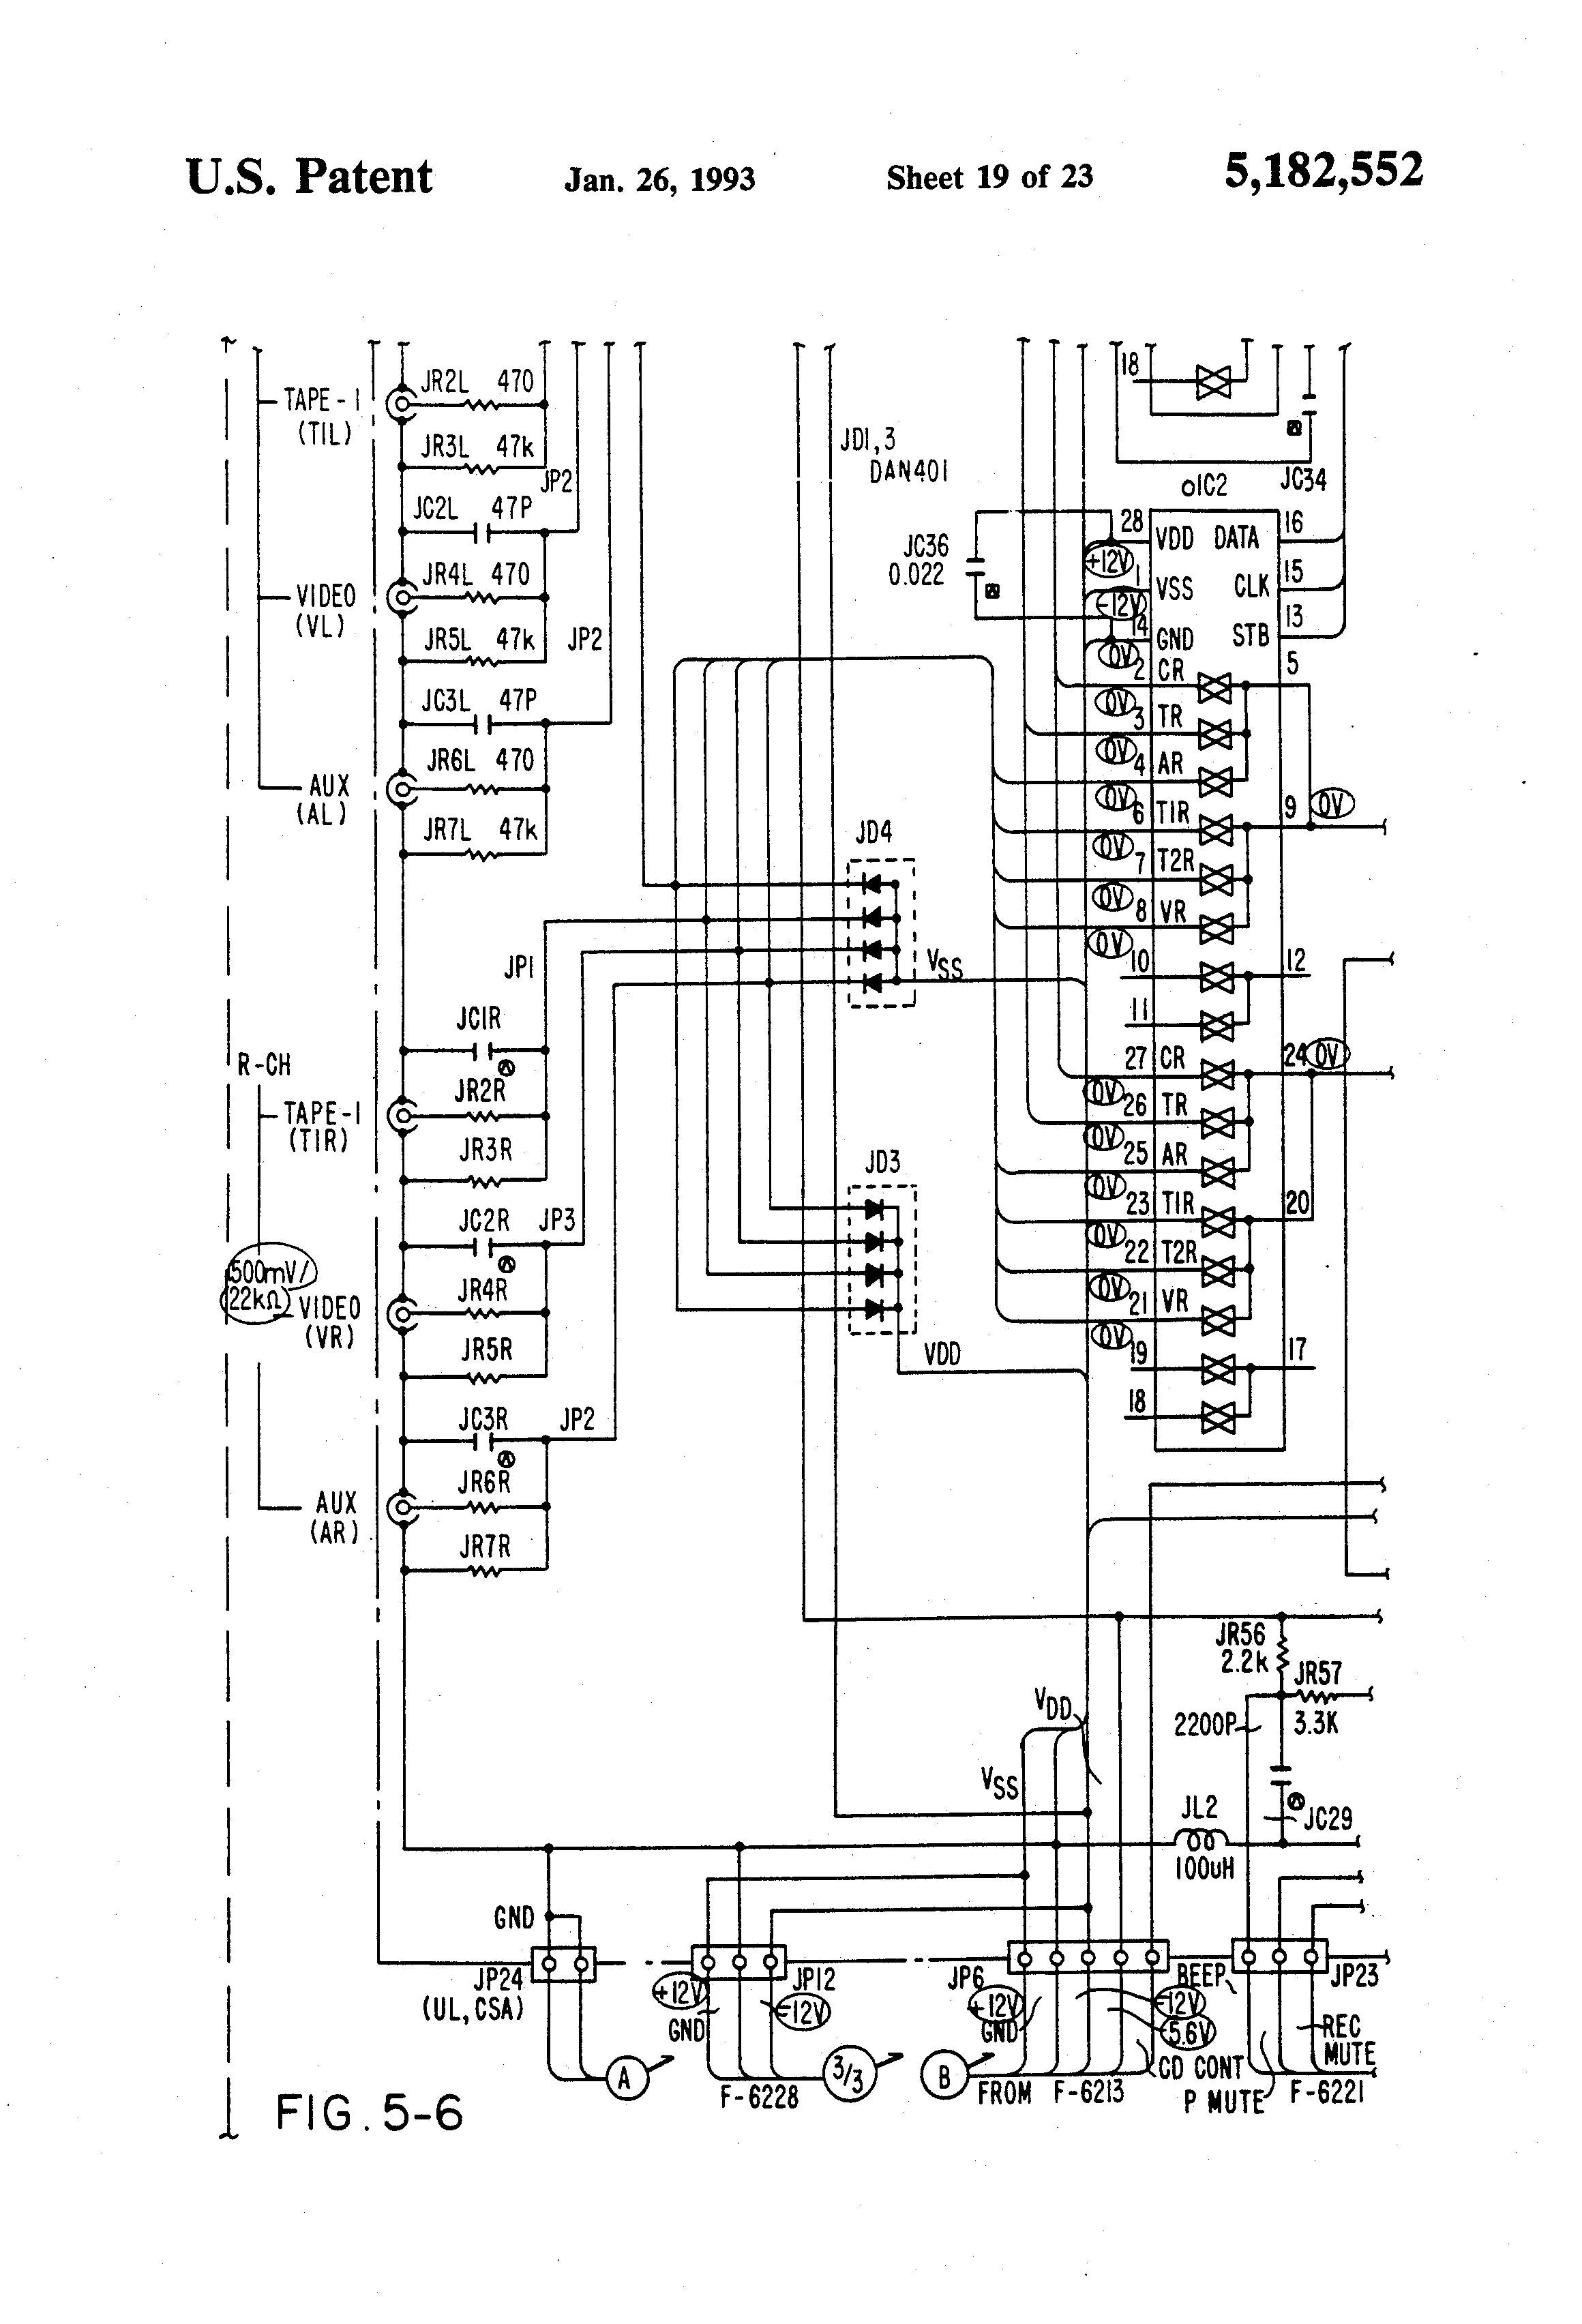 Remarkable Altec Lansing Acs340 Wiring Diagram Basic Electronics Wiring Diagram Wiring Cloud Battdienstapotheekhoekschewaardnl